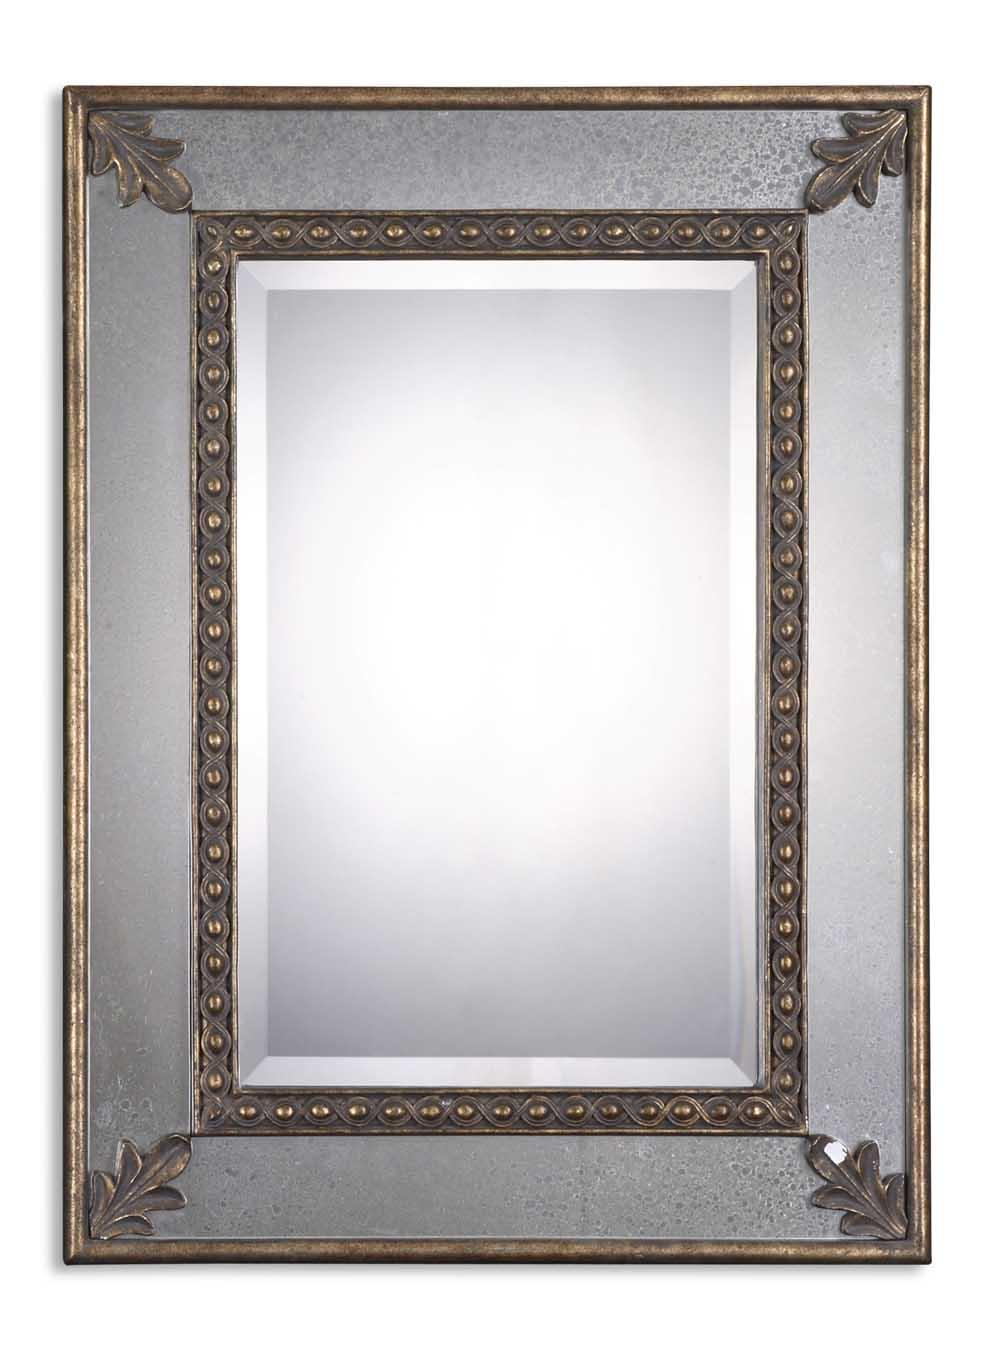 Uttermost Mirrors Michelina Mirror - Item Number: 08056 B